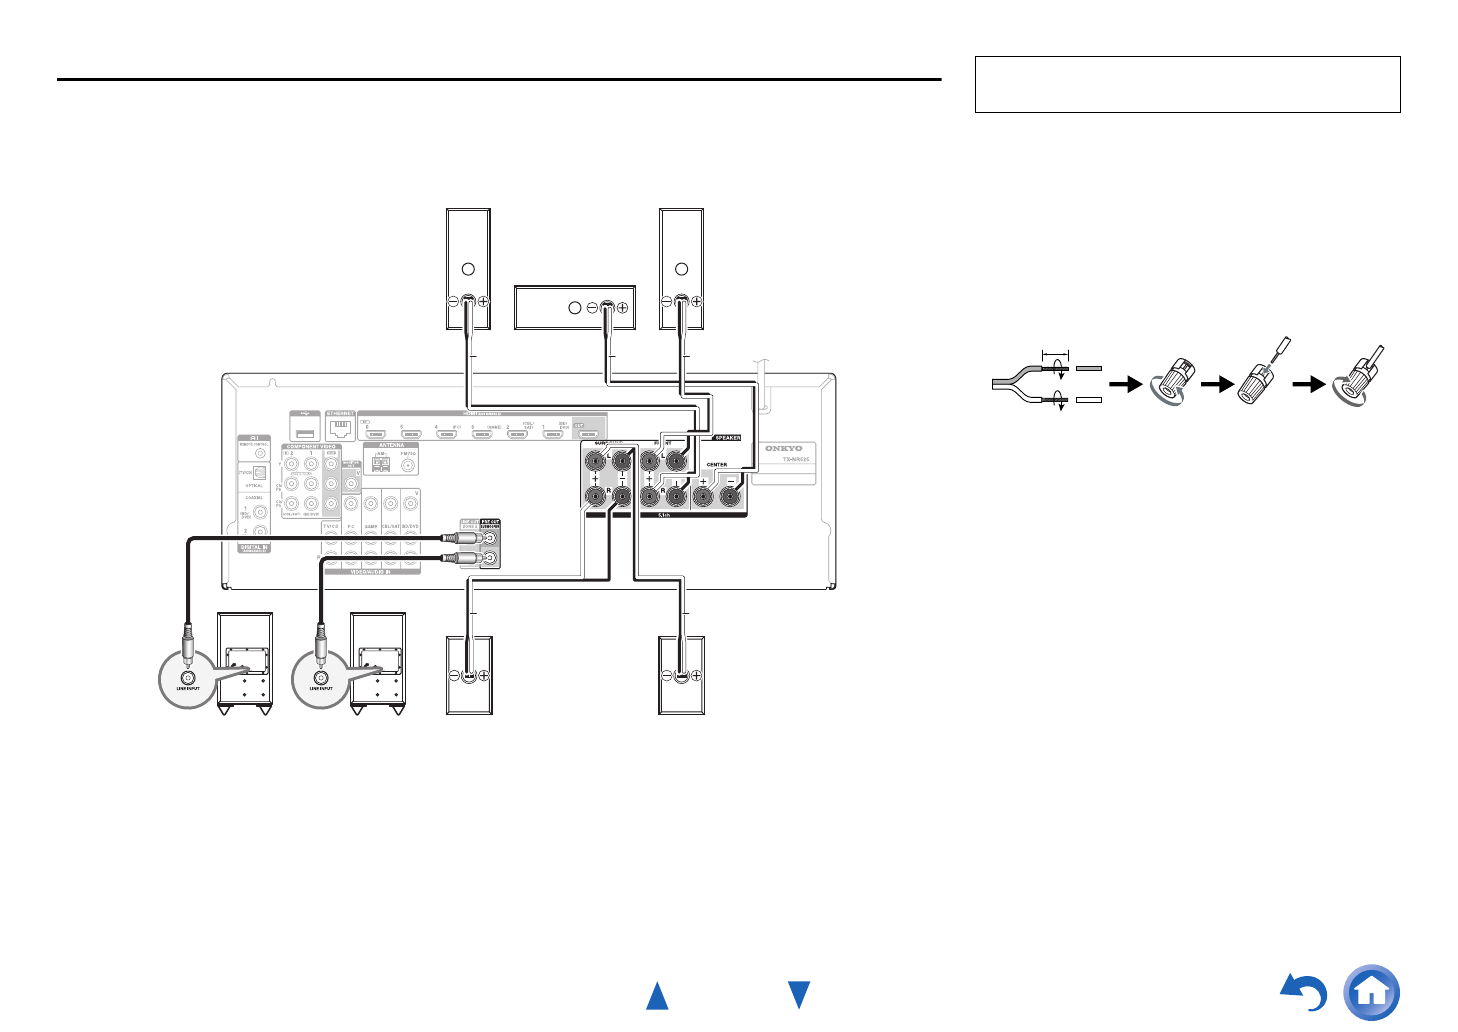 Onkyo Av Receiver Txnr525 Users Manual Suddenlink Wiring Diagram Connections